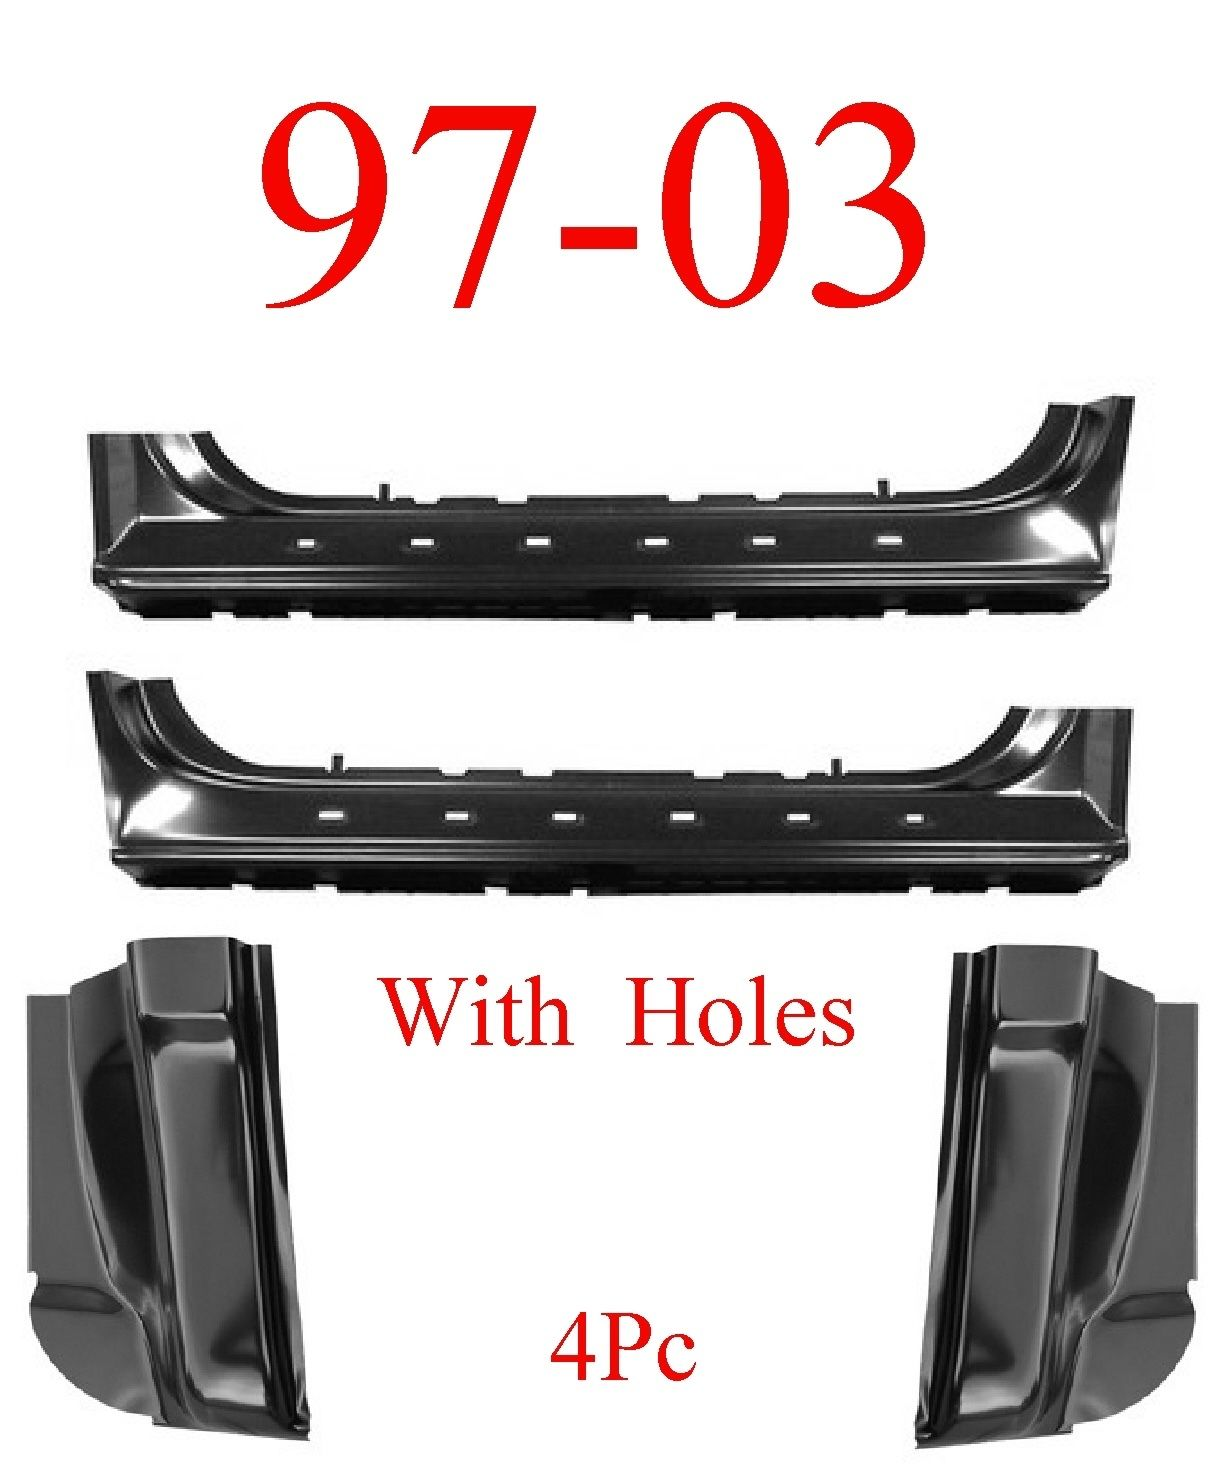 97-03 Ford 4Pc Extended Rocker & Cab Corner Kit, With Holes